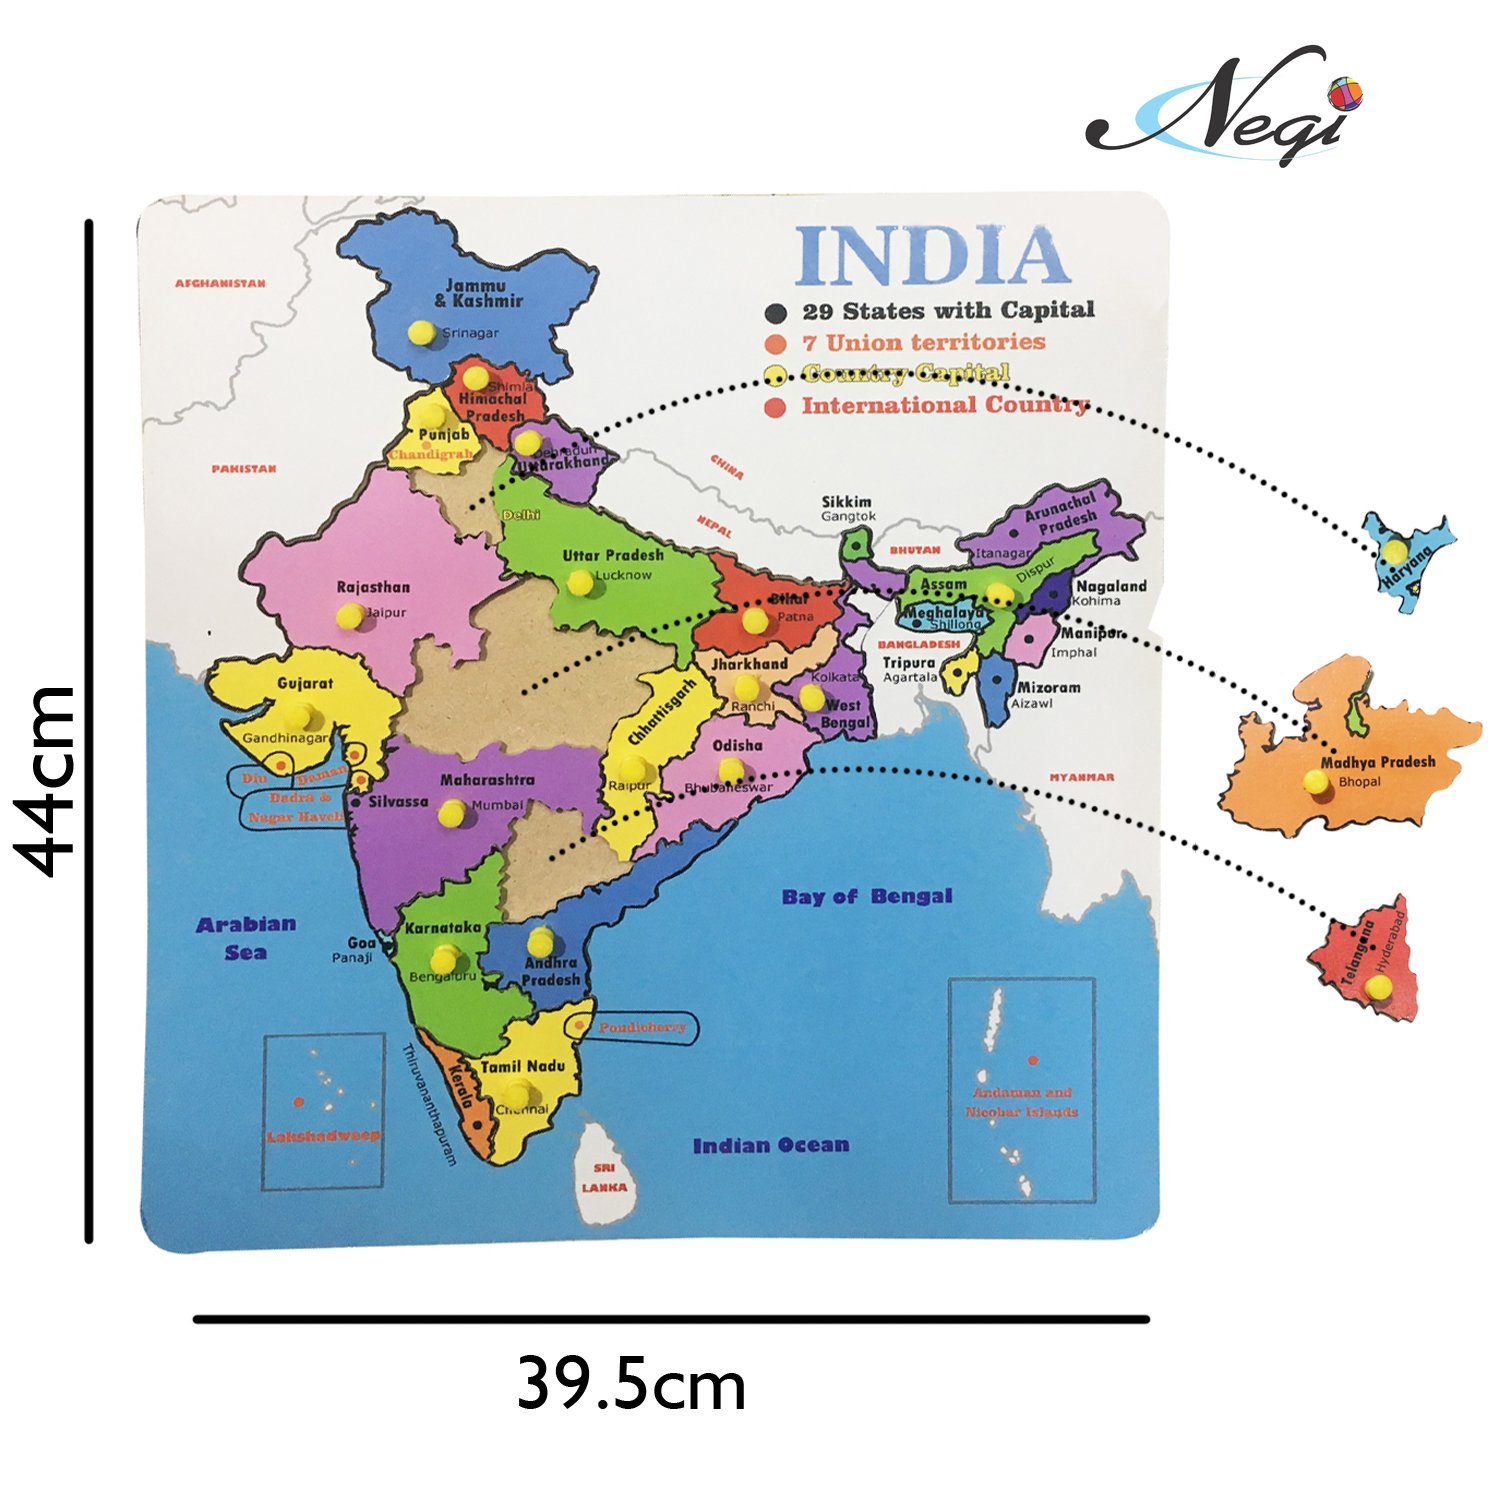 Location Of Ranchi In India Map.Buy Negi 21 Pcs Knob Wooden Puzzle Map Of India Size 44cm X 39 5cm